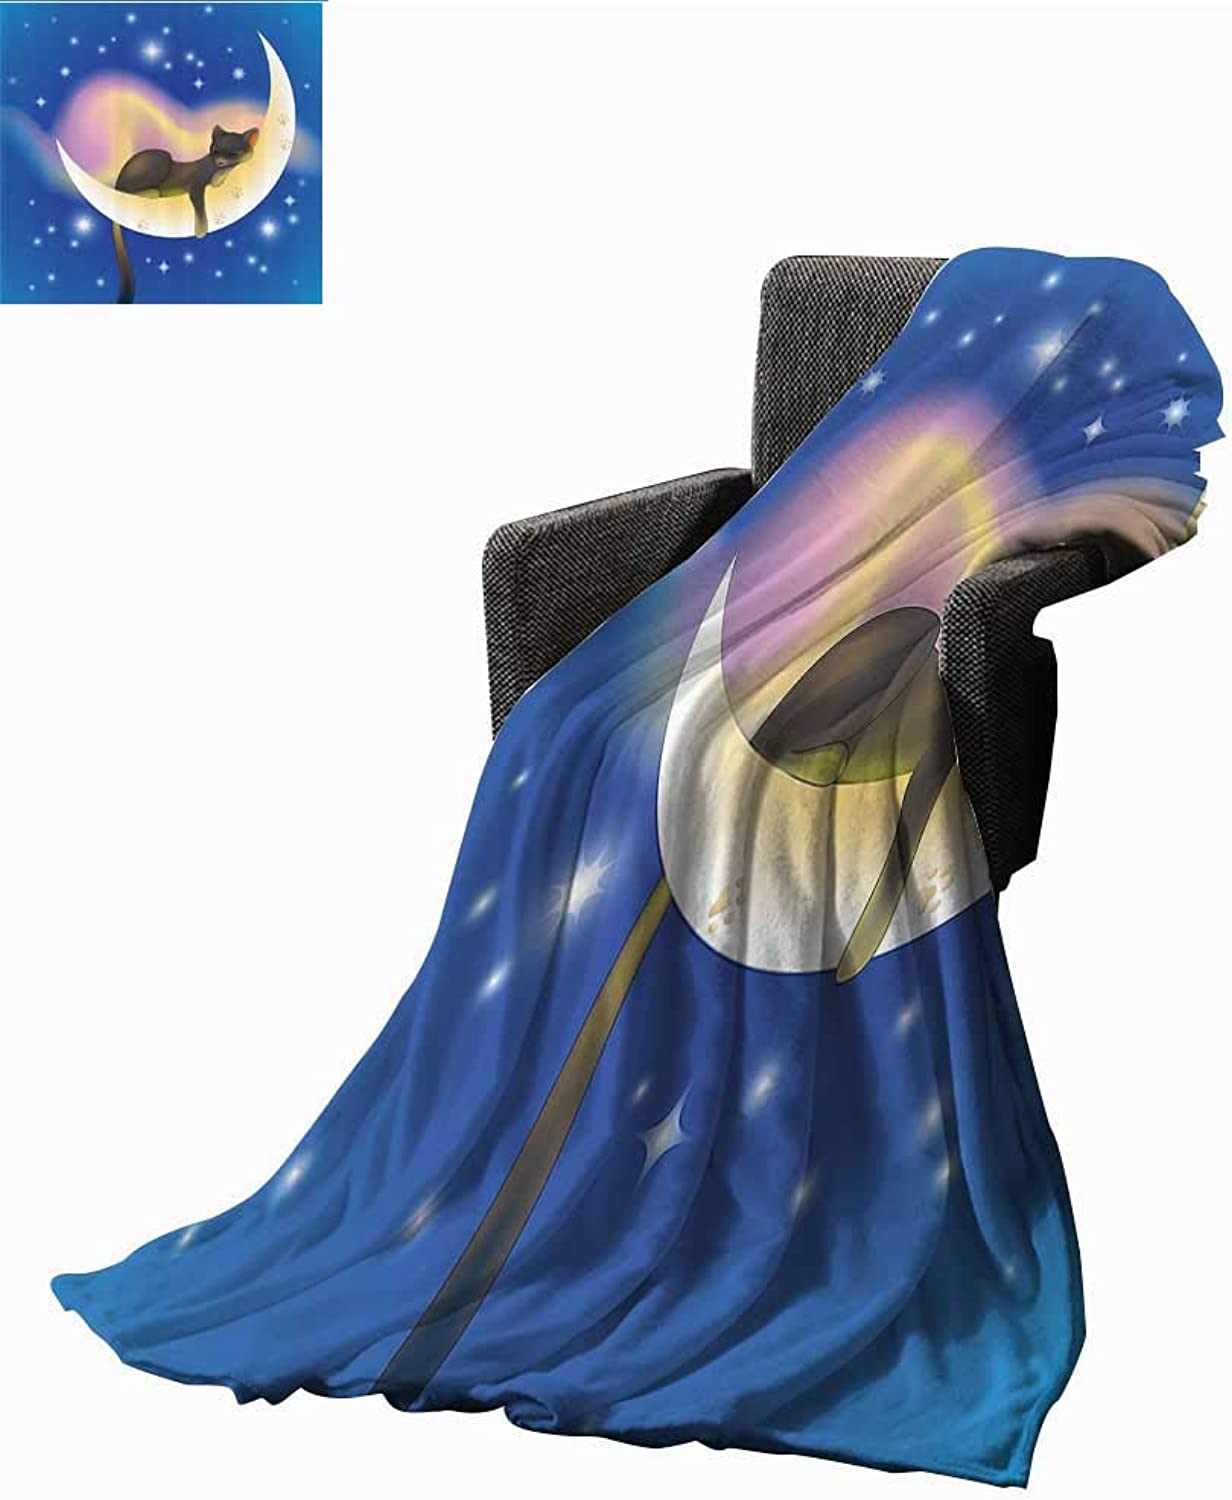 G Idle Sky Cat Home Throw Blanket Cat Sleeping on Crescent Moon Stars Night Sweet Dreams Themed Kids Nursery Design Cozy for Couch Sofa Bed Beach Travel 51  Wx60 L bluee Yellow